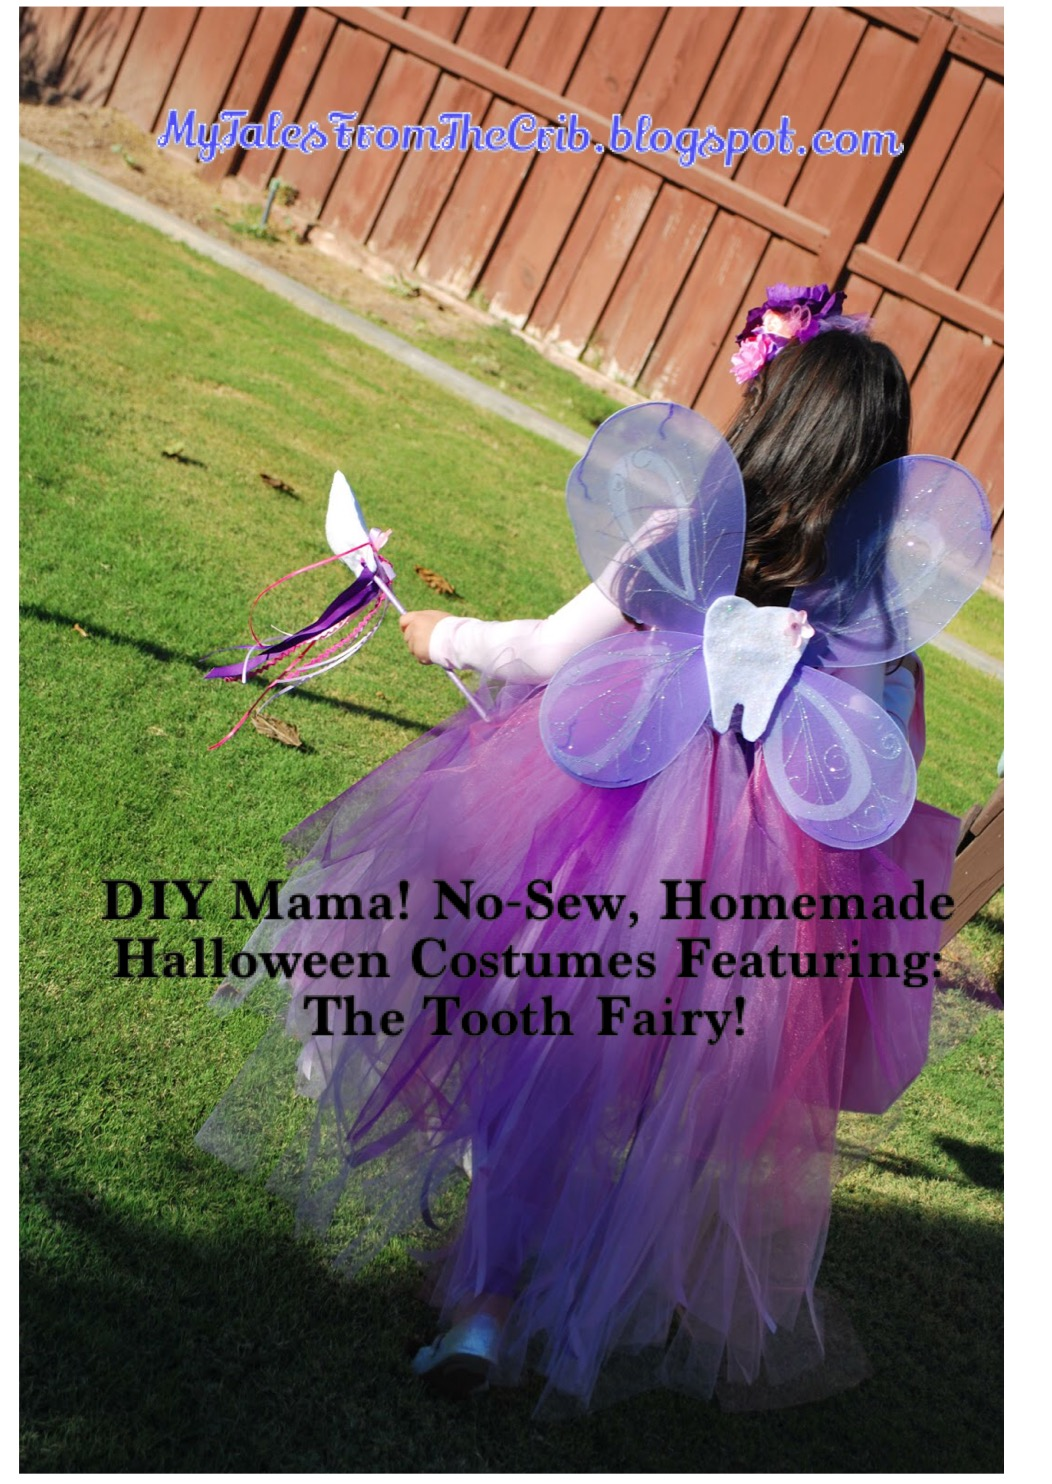 Looking For The No-Sew DIY Tooth Fairy Costume From Pinterest?